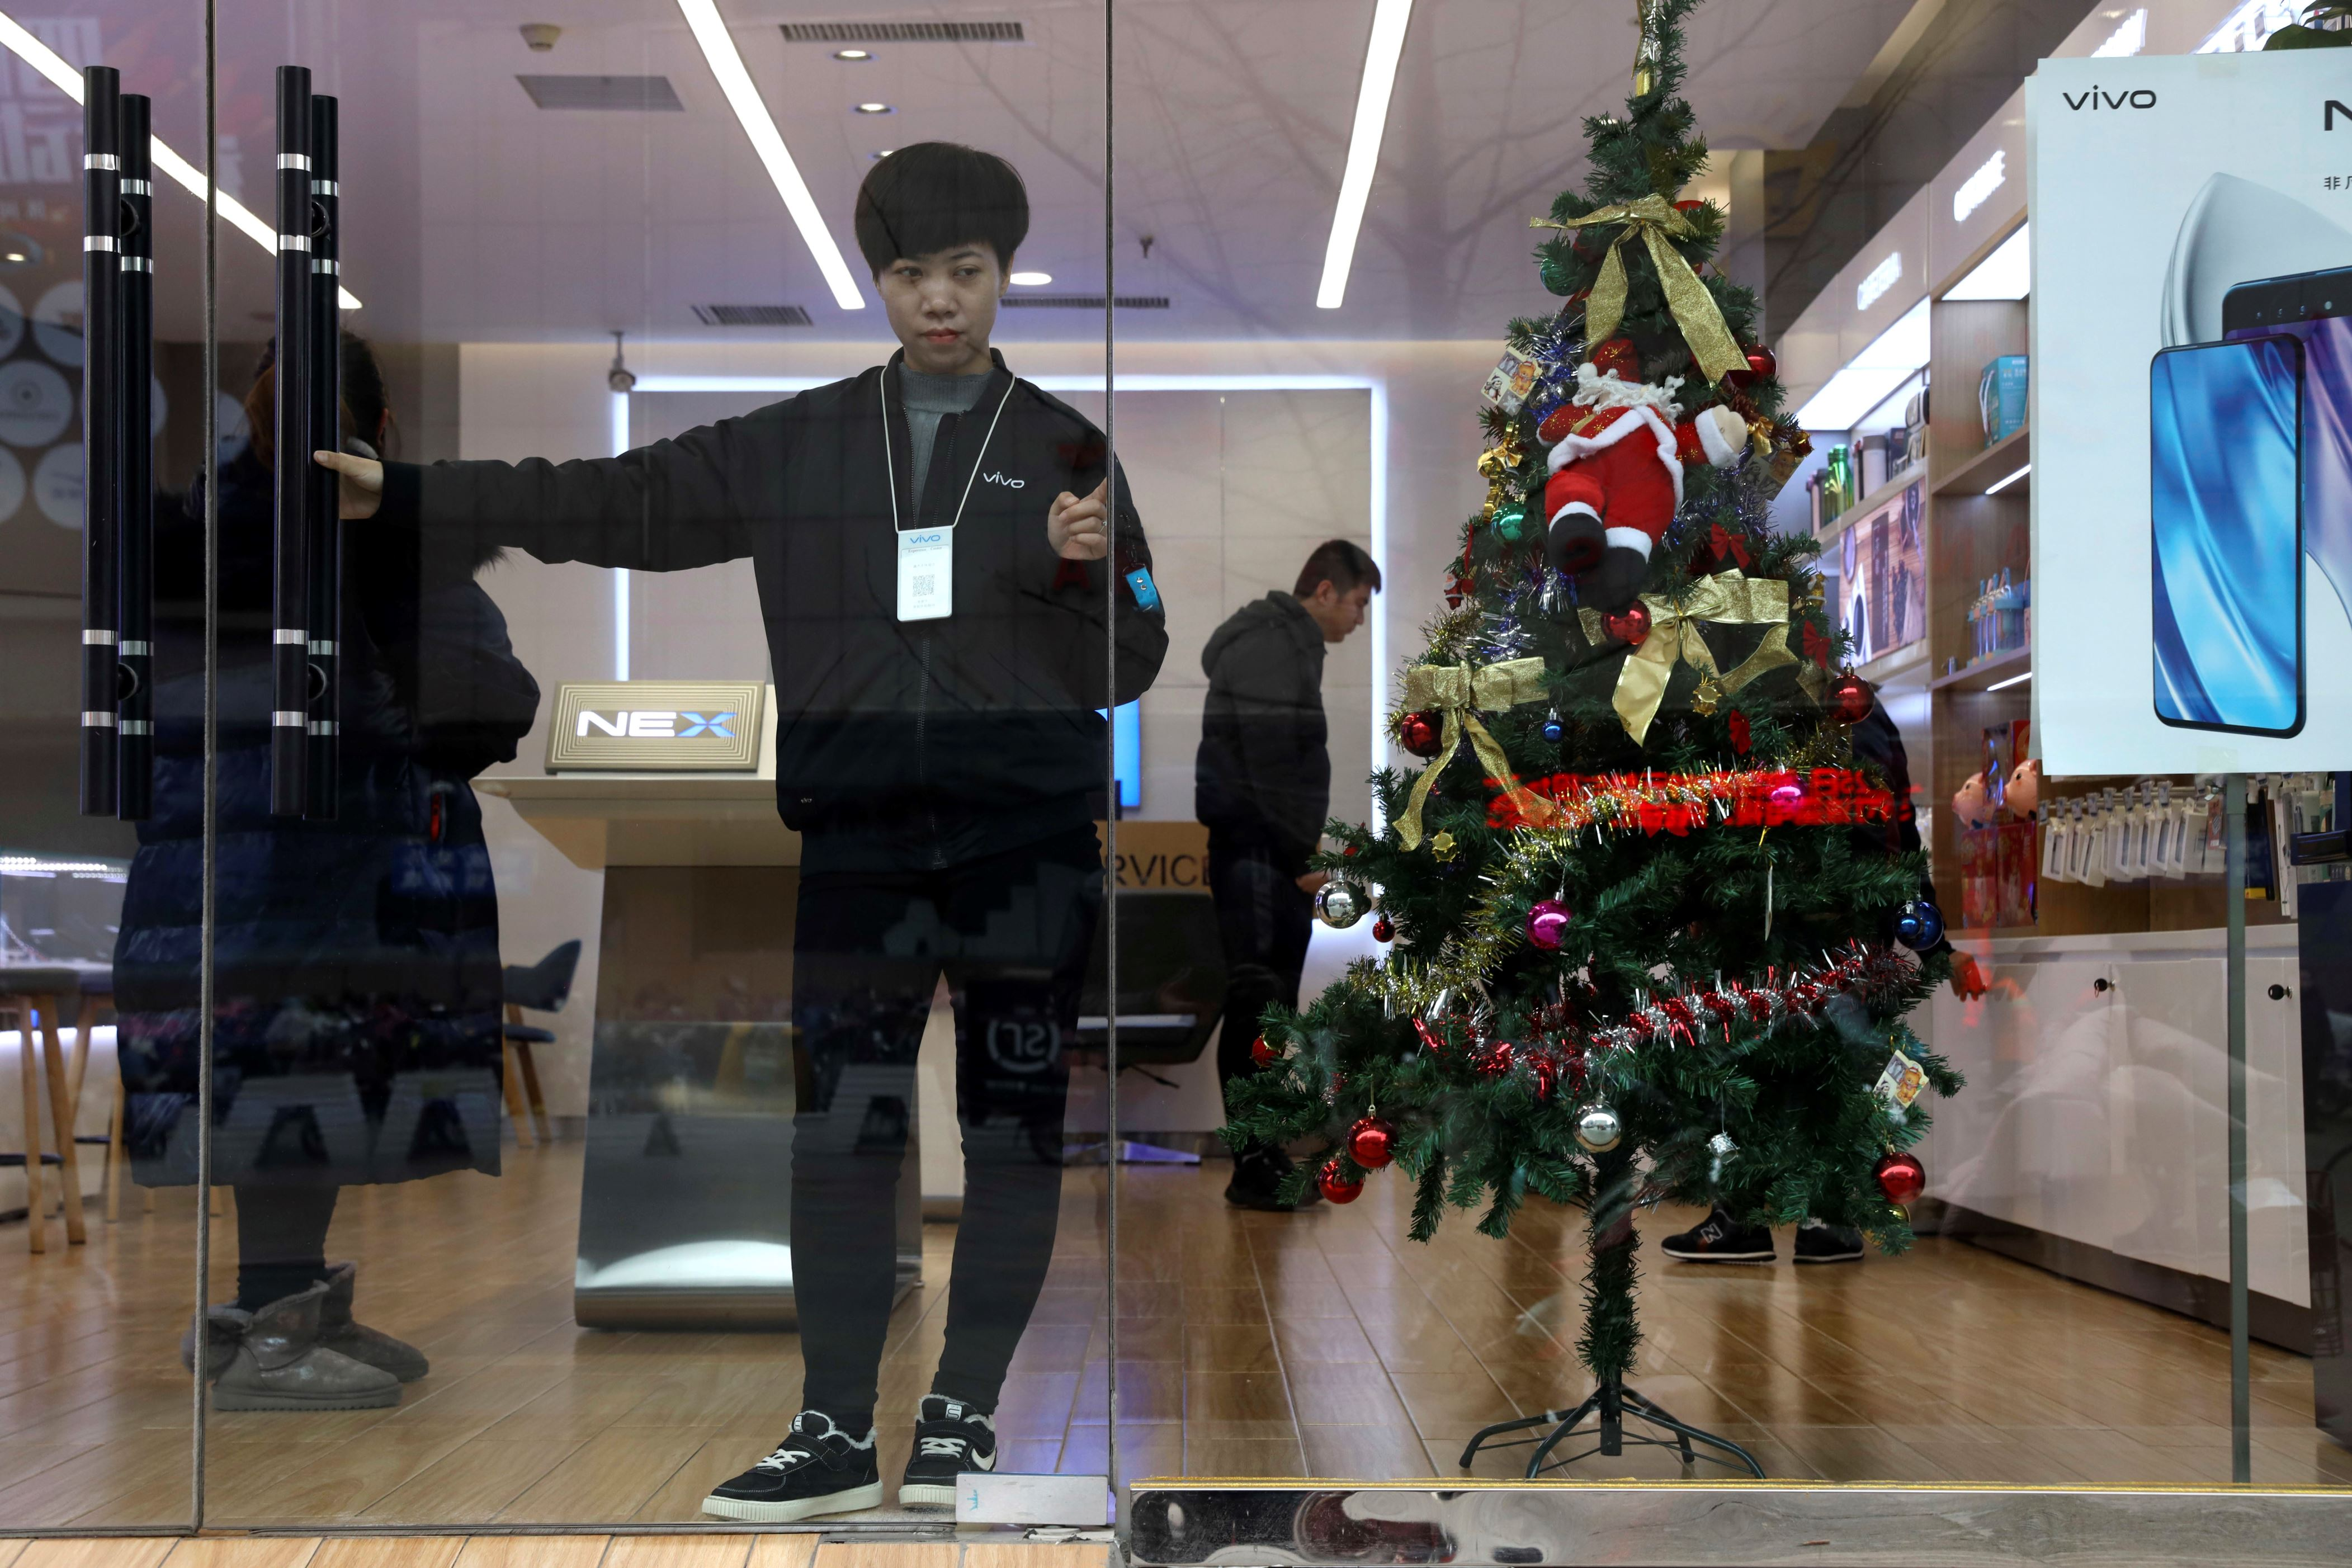 Santa gets pushed out as China's leaders emphasize tradition